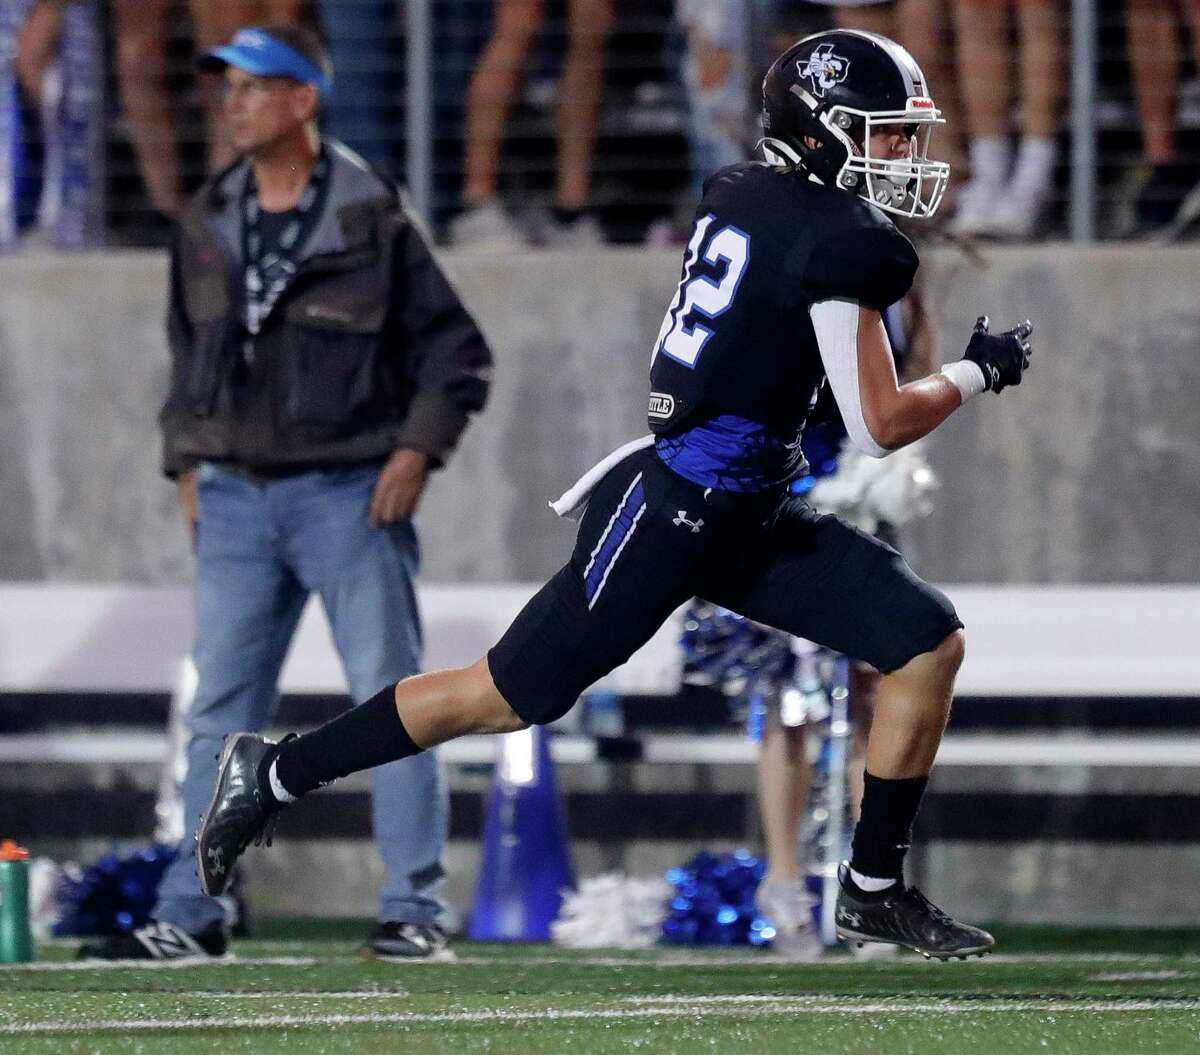 New Caney wide receiver Blaine Lucas (12) runs for a 51-yard touchdown during the first quarter of a high school football game at Randall Reed Stadium, Friday, Oct. 1, 2021, in New Caney.